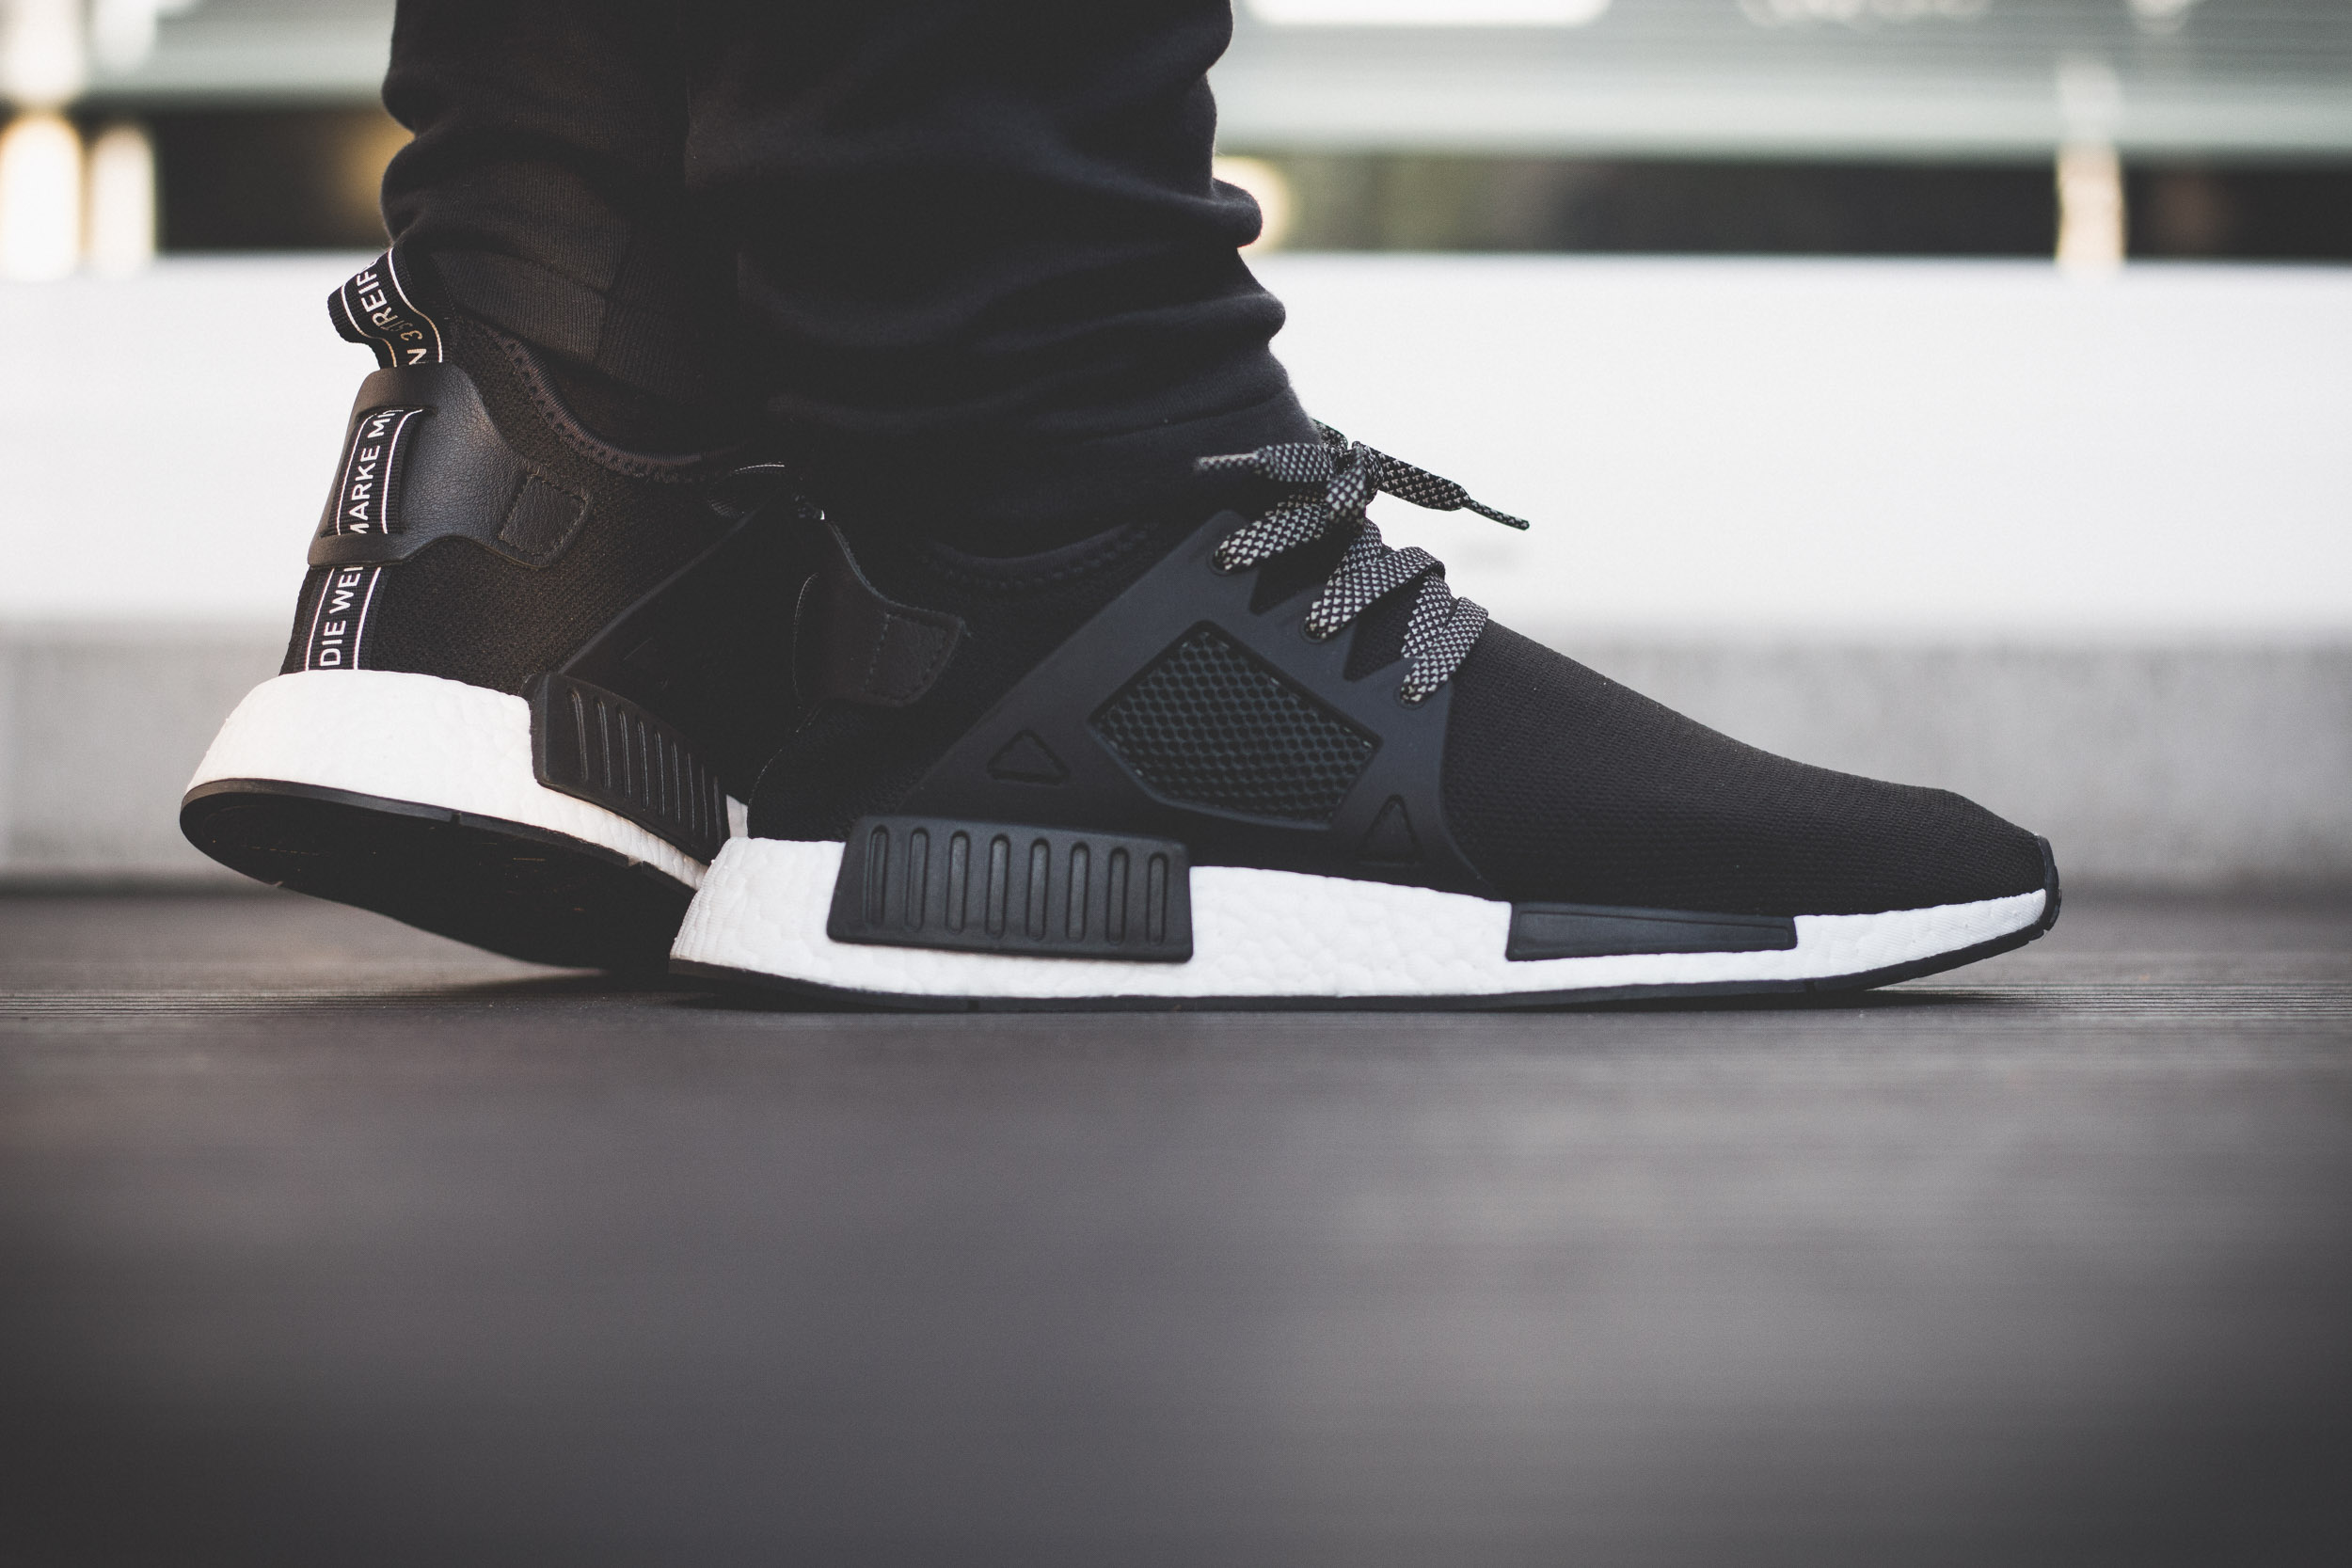 premium selection 410f1 e32ad ᐅ adidas NMD XR1 – Black / White On Feet | #SNKR◁